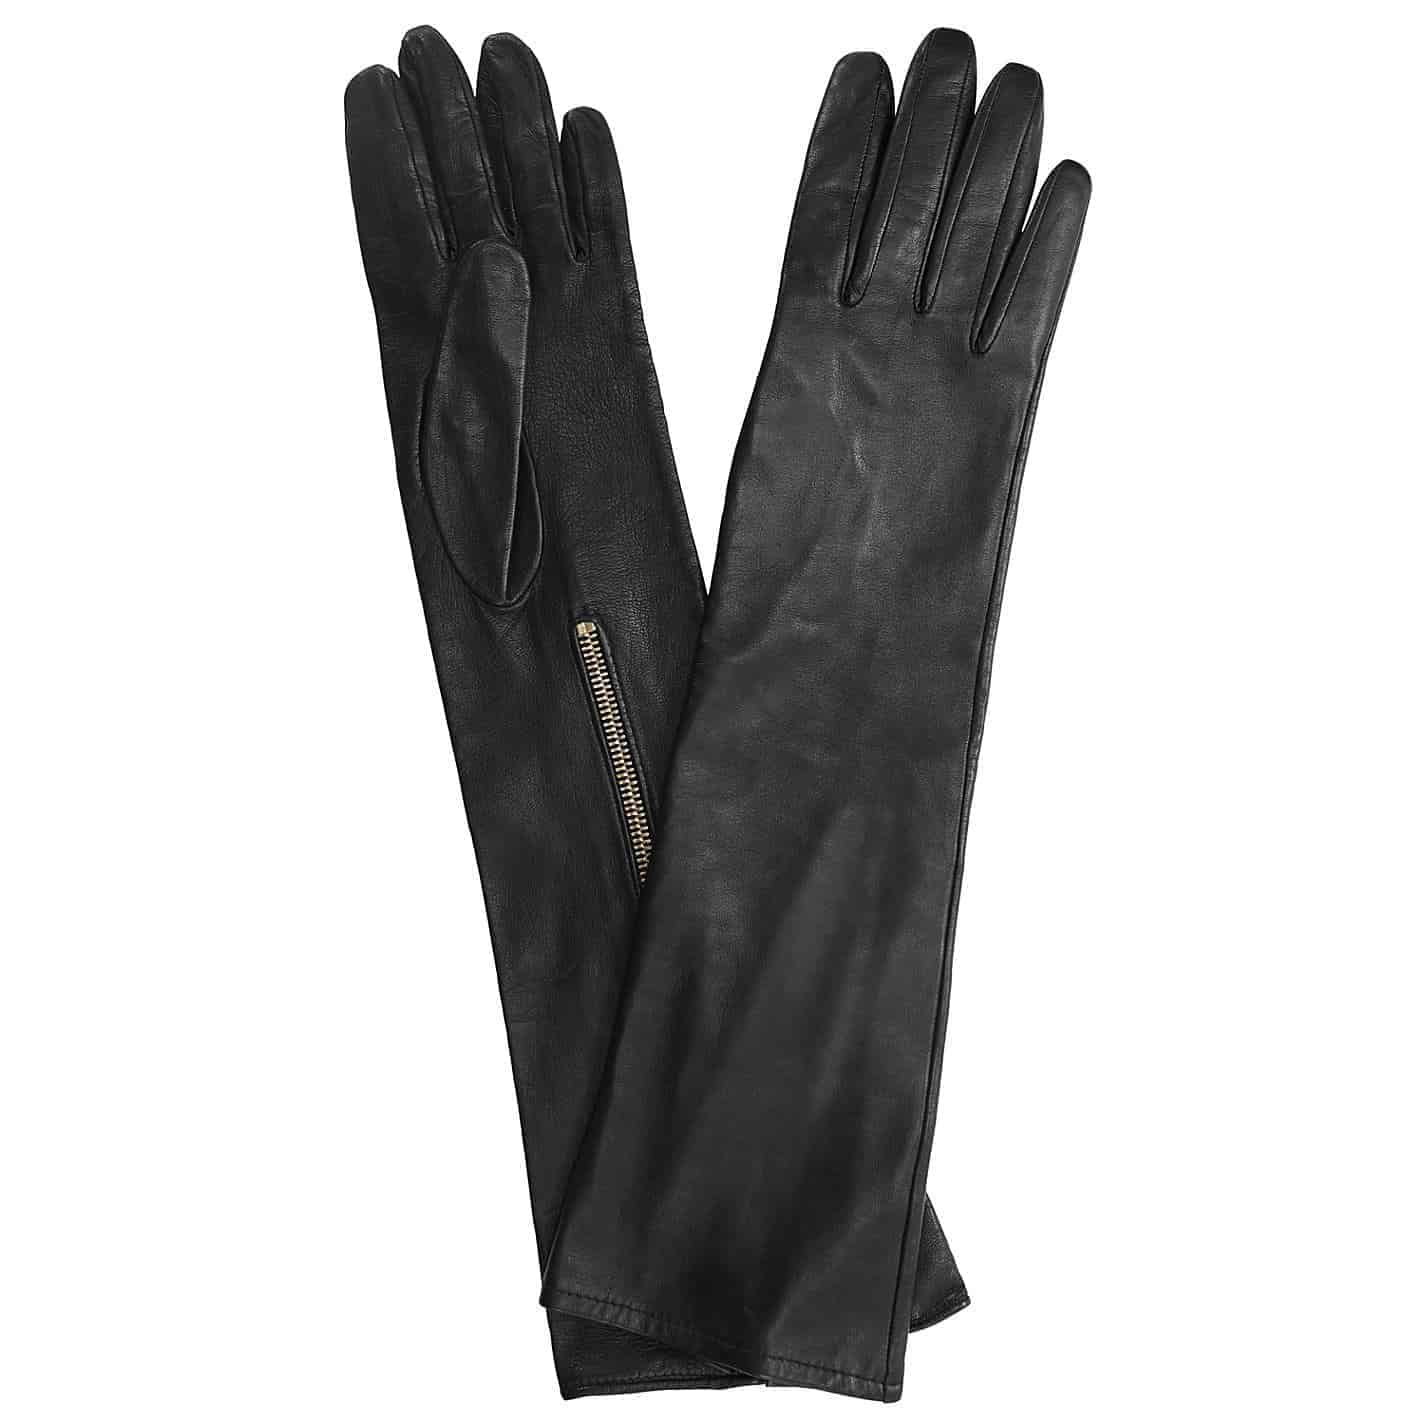 Long Leather Gloves Featured On The Catwalk In AW13 & Protect From Muddy Wheels